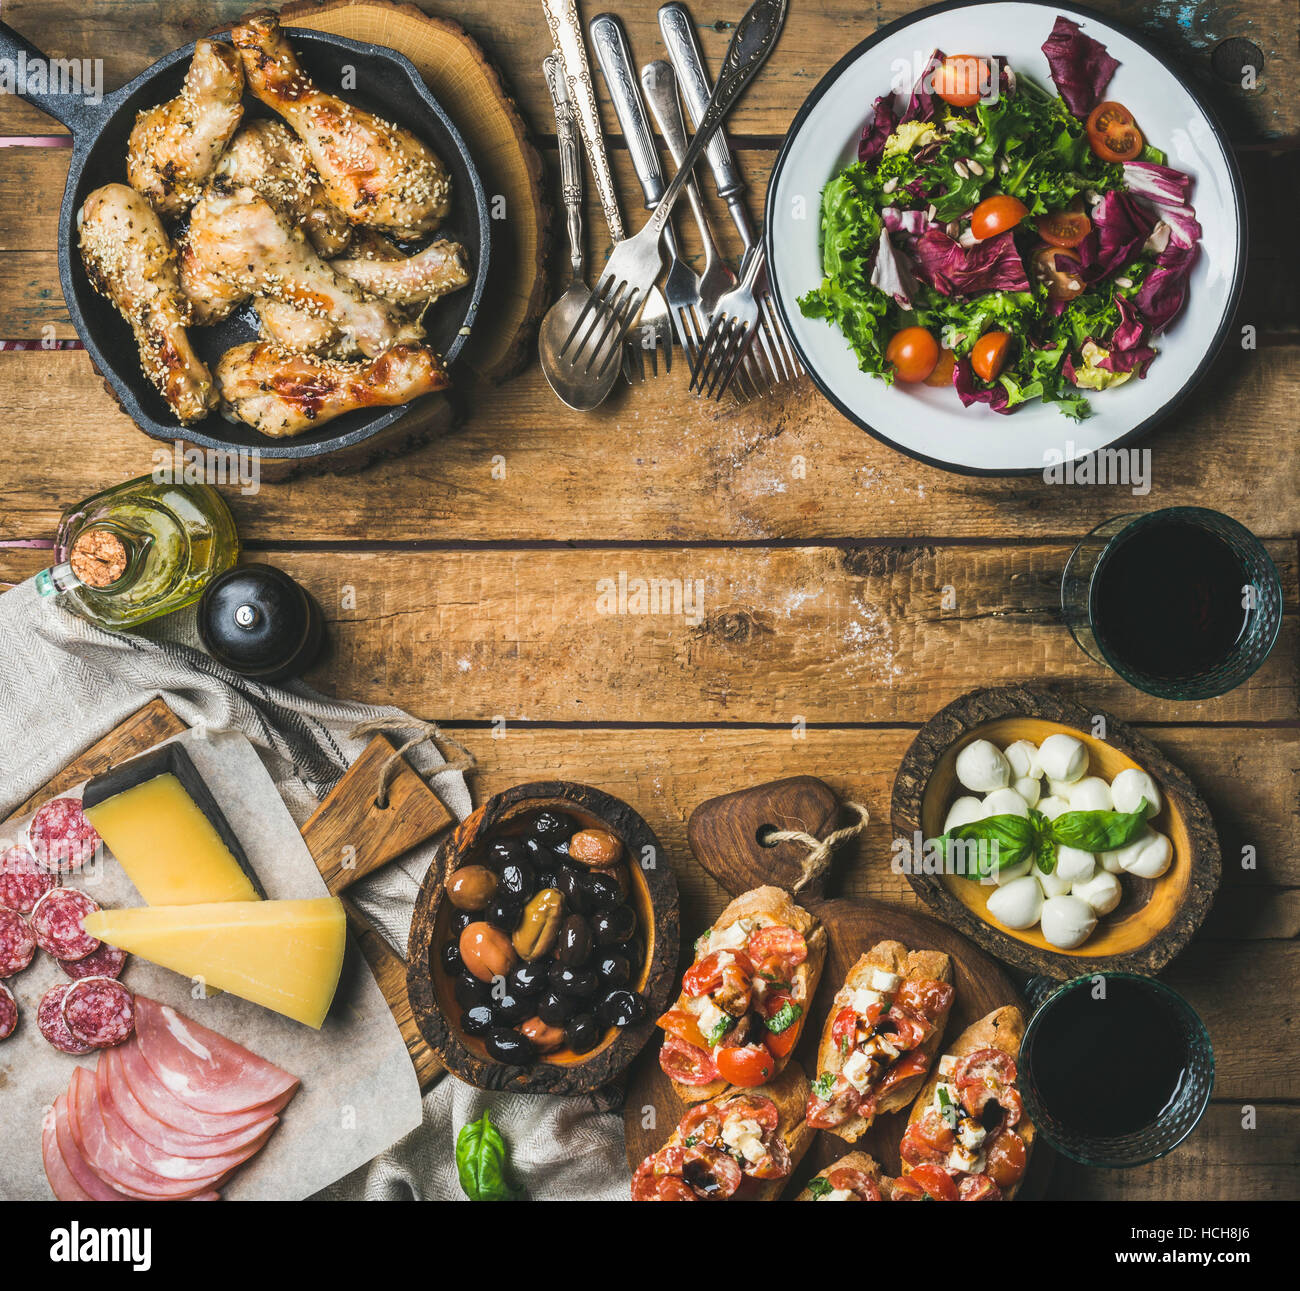 Party table arrangement. Rustic table set with vegetable salad, olives, chicken, tomato and feta cheese brushettas - Stock Image